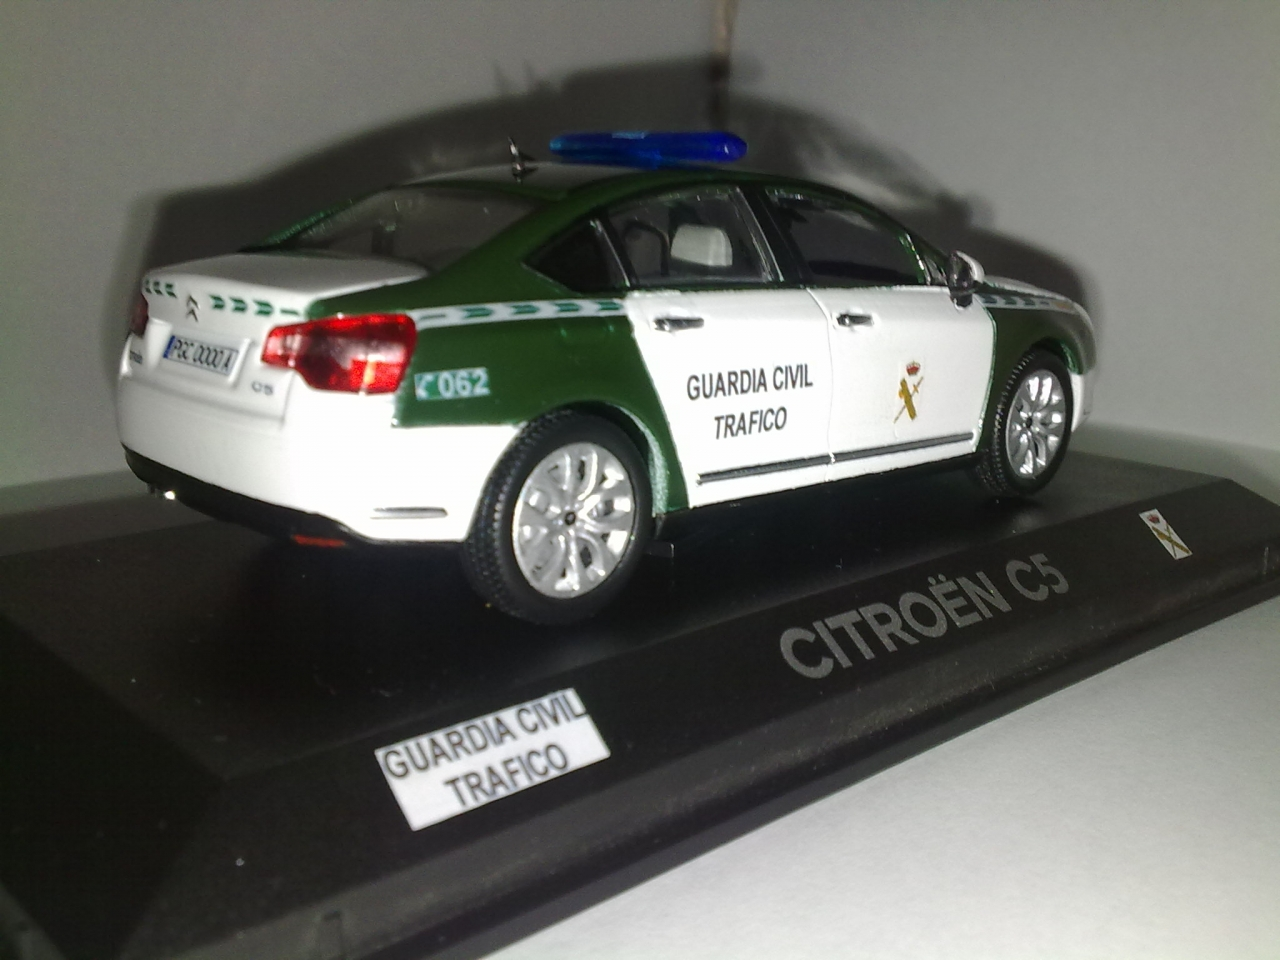 CITROEN C5 III GUARDIA CIVIL, 1/43